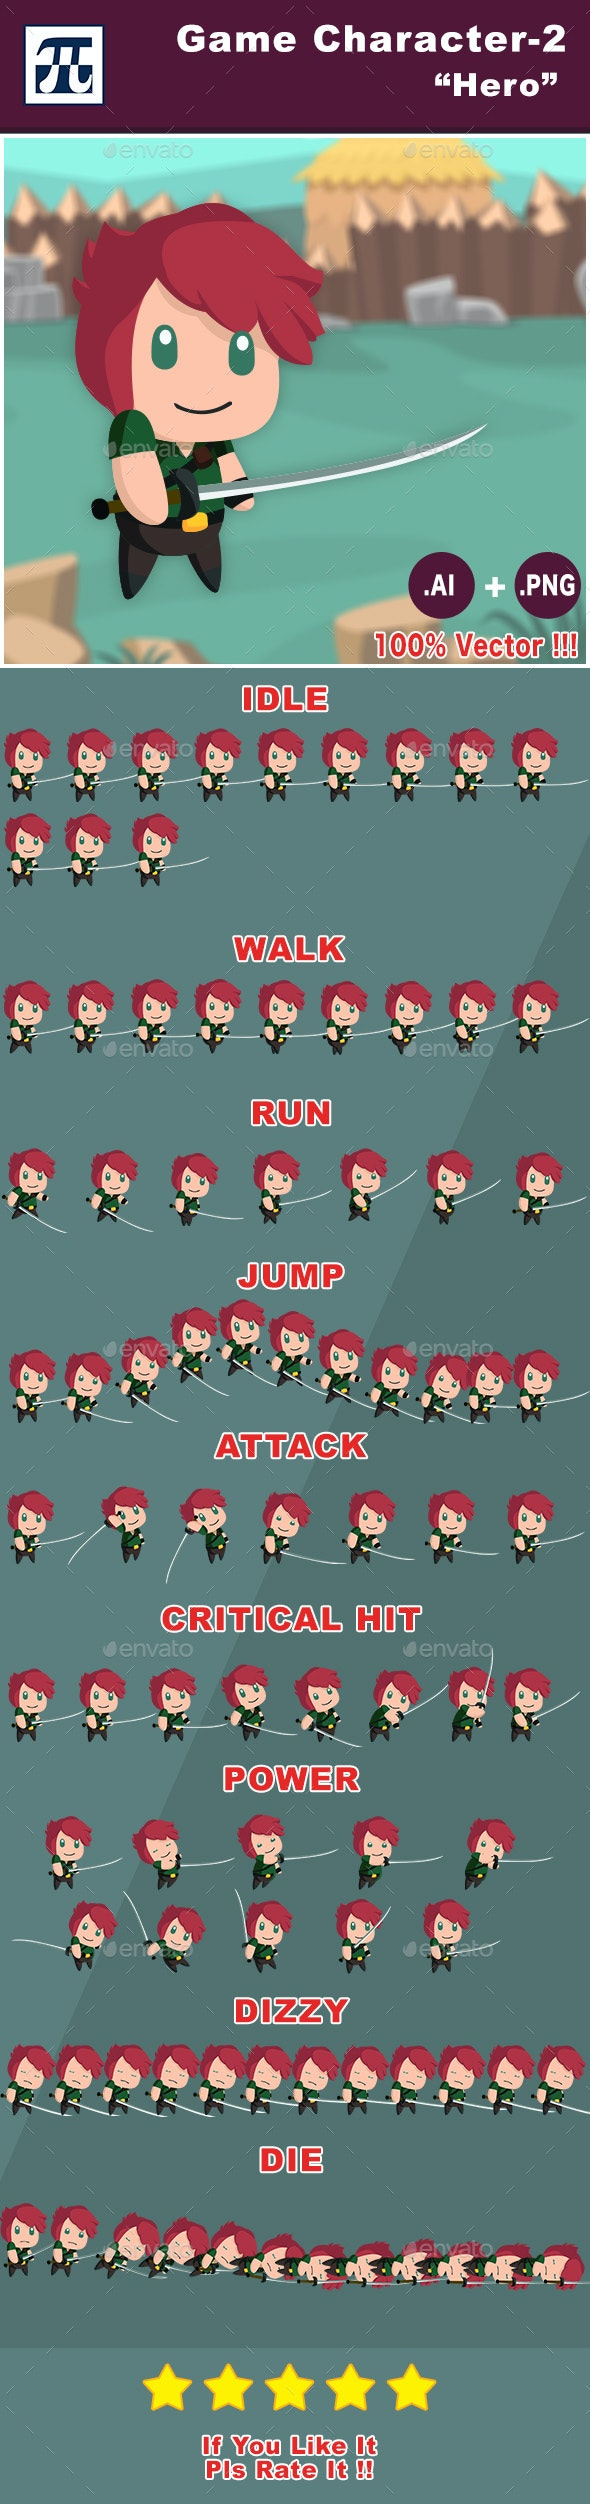 Game Character Set 2 - Hero - Sprites Game Assets